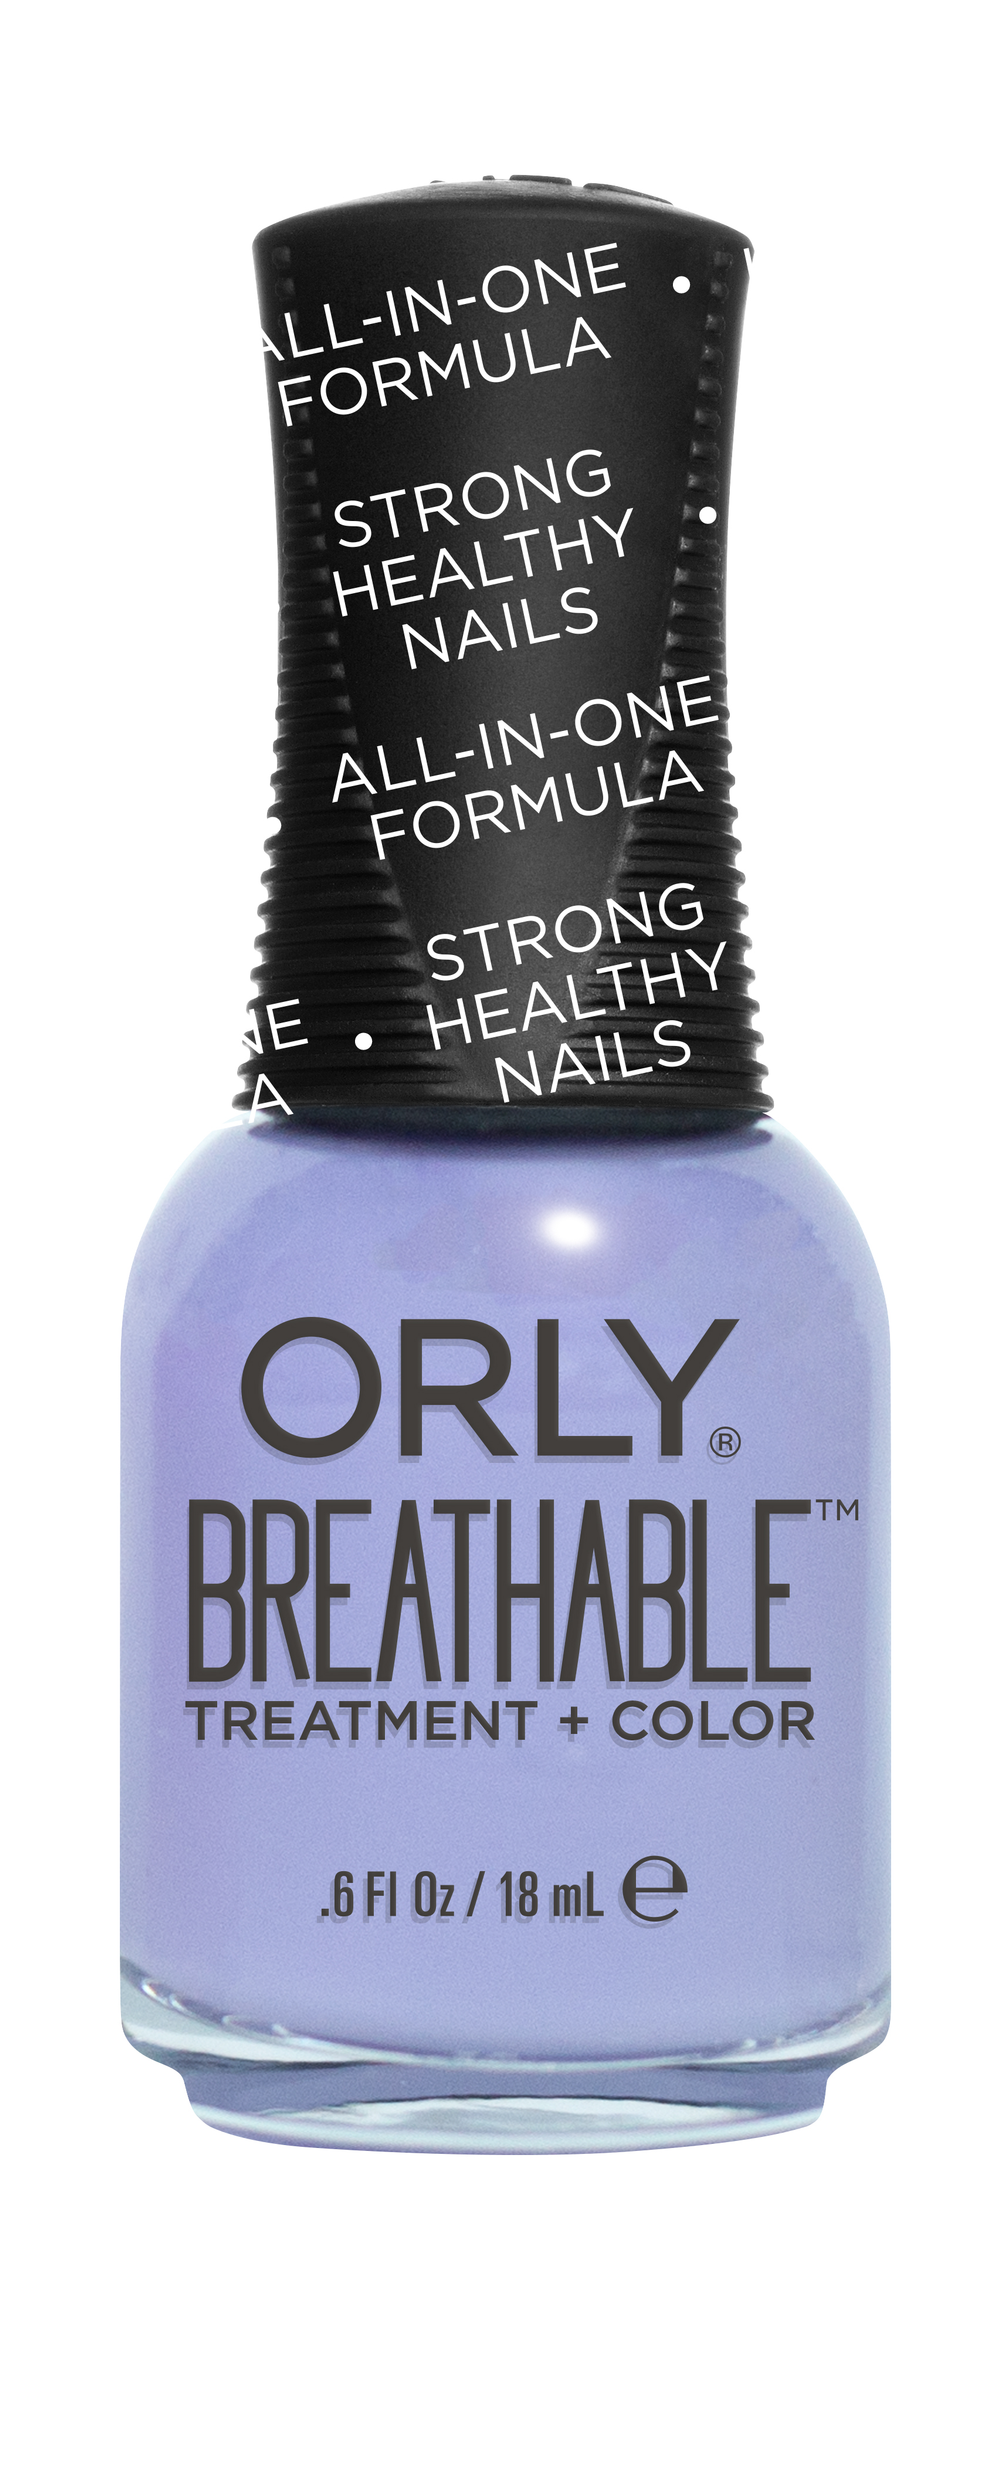 "Orly Breathable Treatment + Color: Compared to a contact lens, this treatment+color allows oxygen and hydration to pass through the nail lacquer, promoting growth, increasing thickness and helping heal damaged nails. Argan oil, vitamins b5 and c hydrate nails, which further helps repair damaged nails. The one-step polish simply requires two coats—and instructs no base or topcoat. The 18-shade collection will be available in September. (Shown in ""Just Breathe""). Visit orlybeauty.com/breathable for more information."